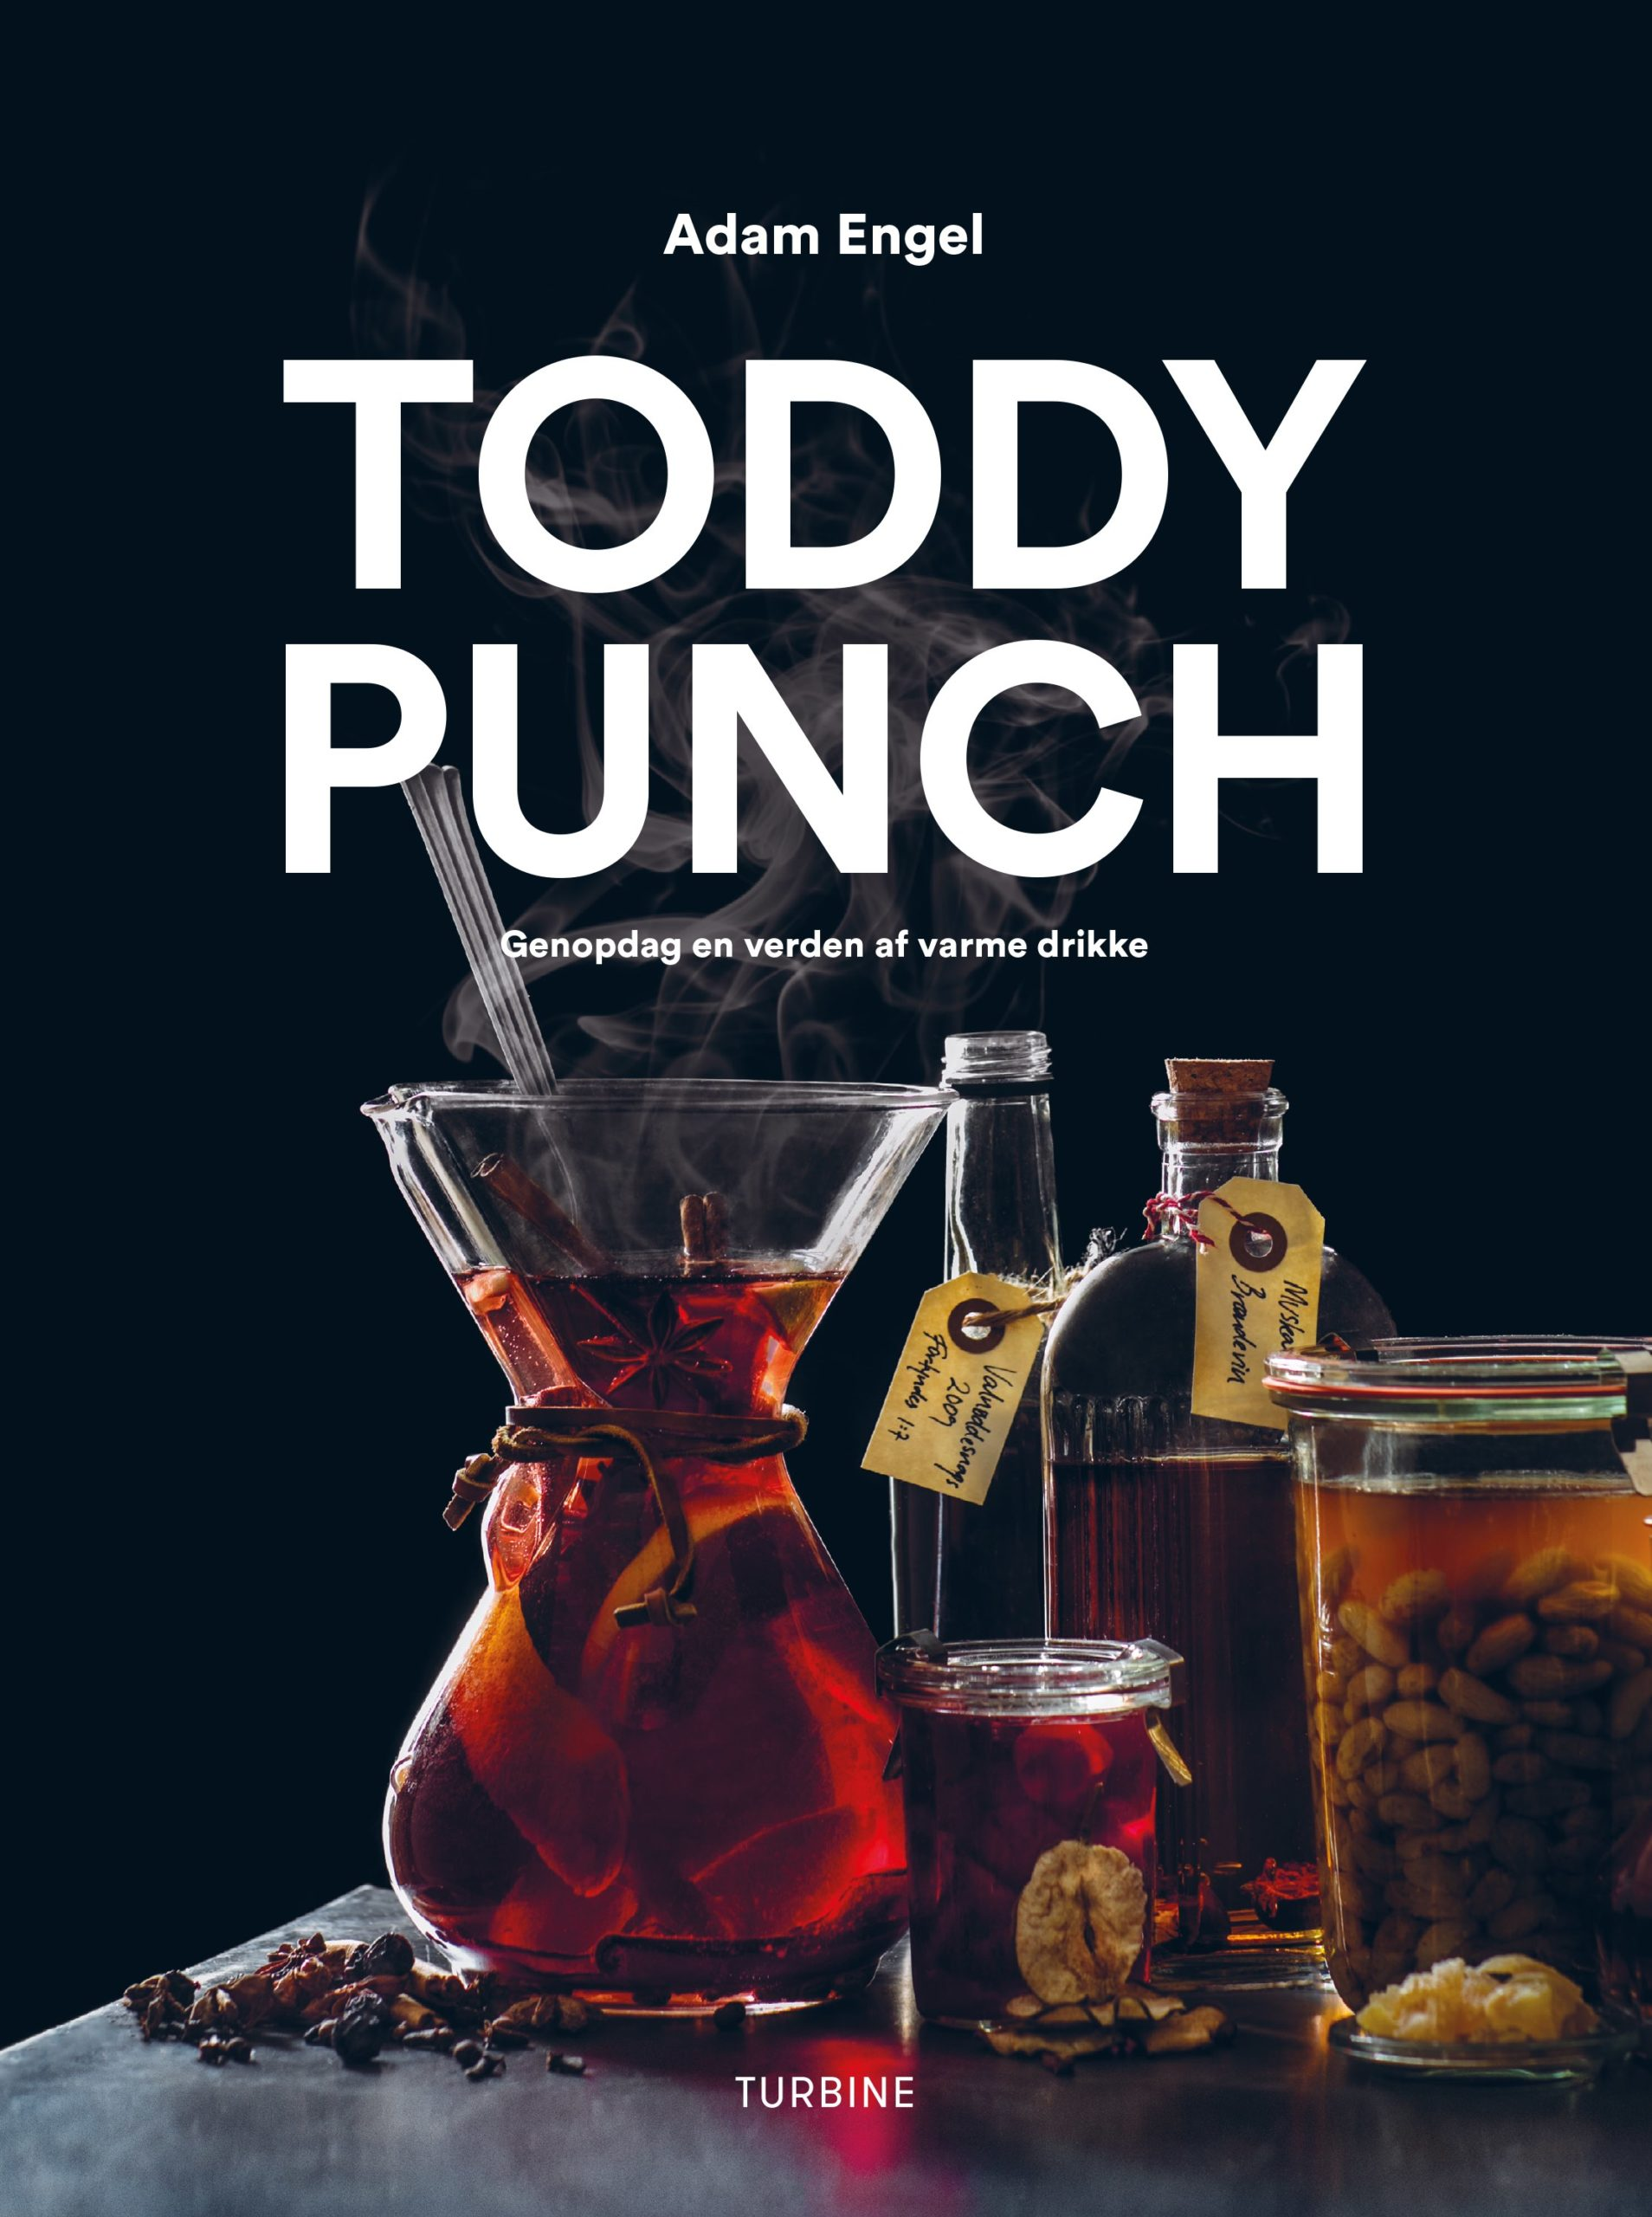 Toddy punch